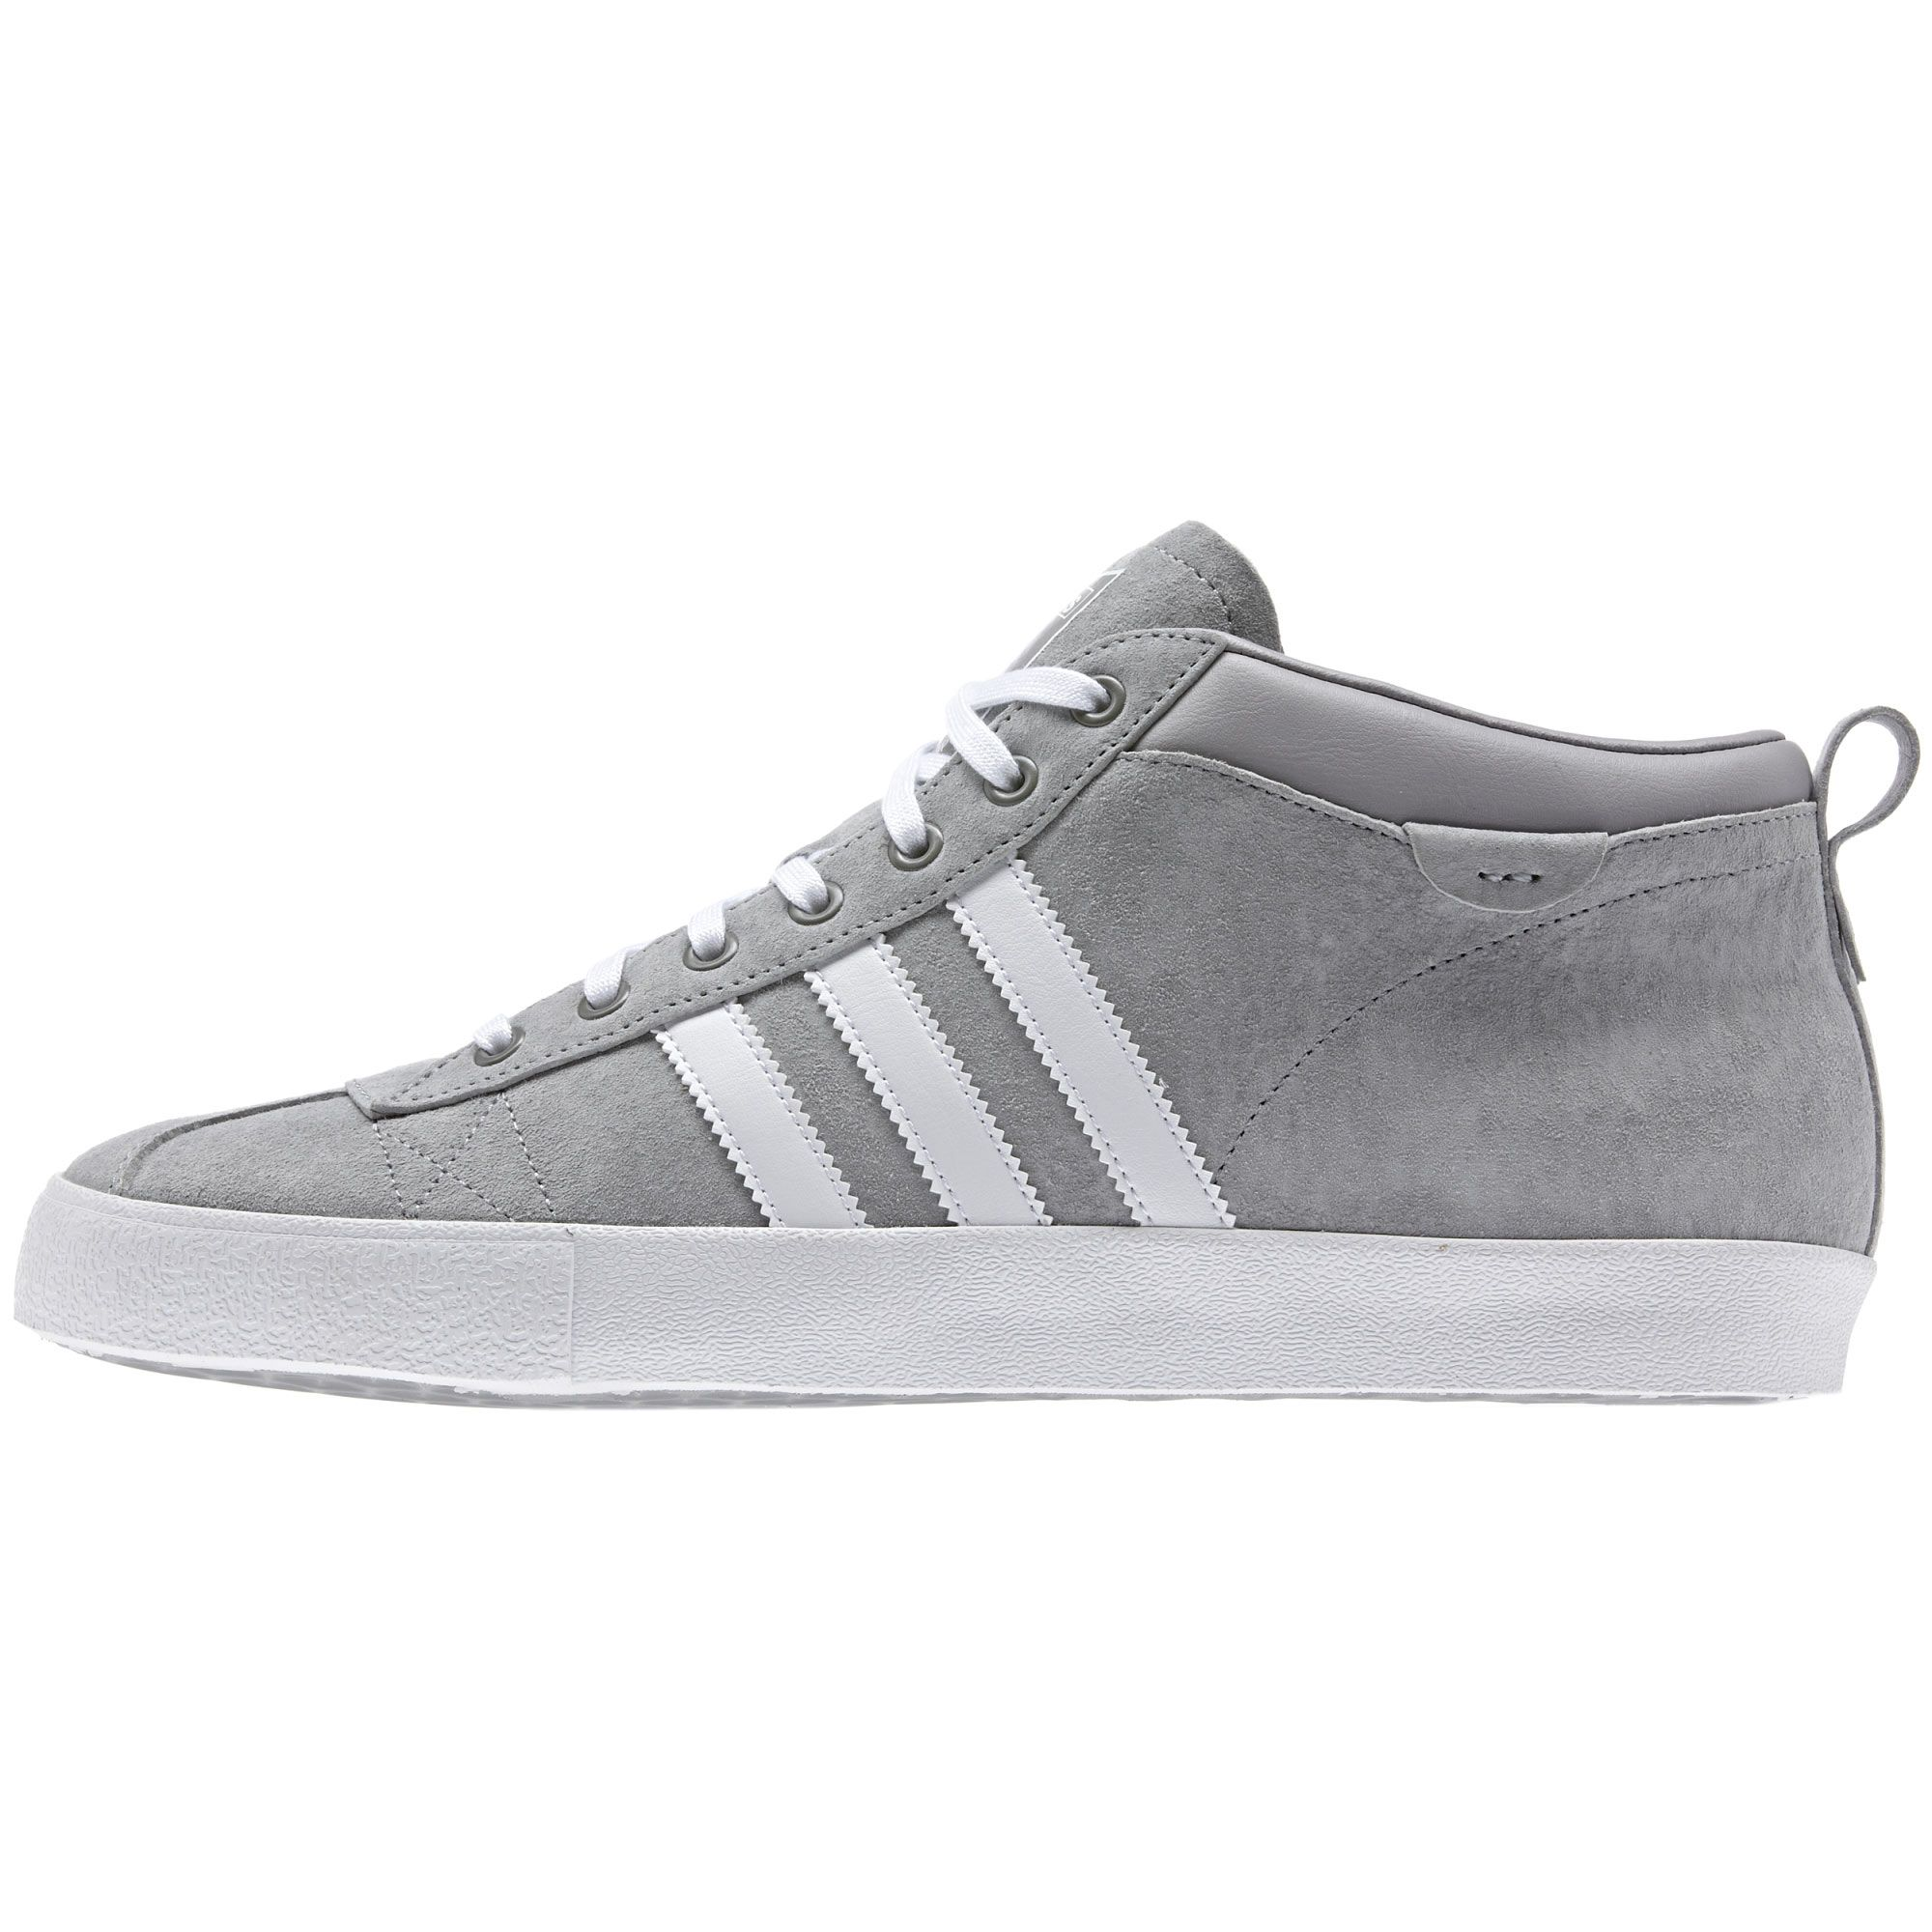 adidas men's gazelle sneakers nz